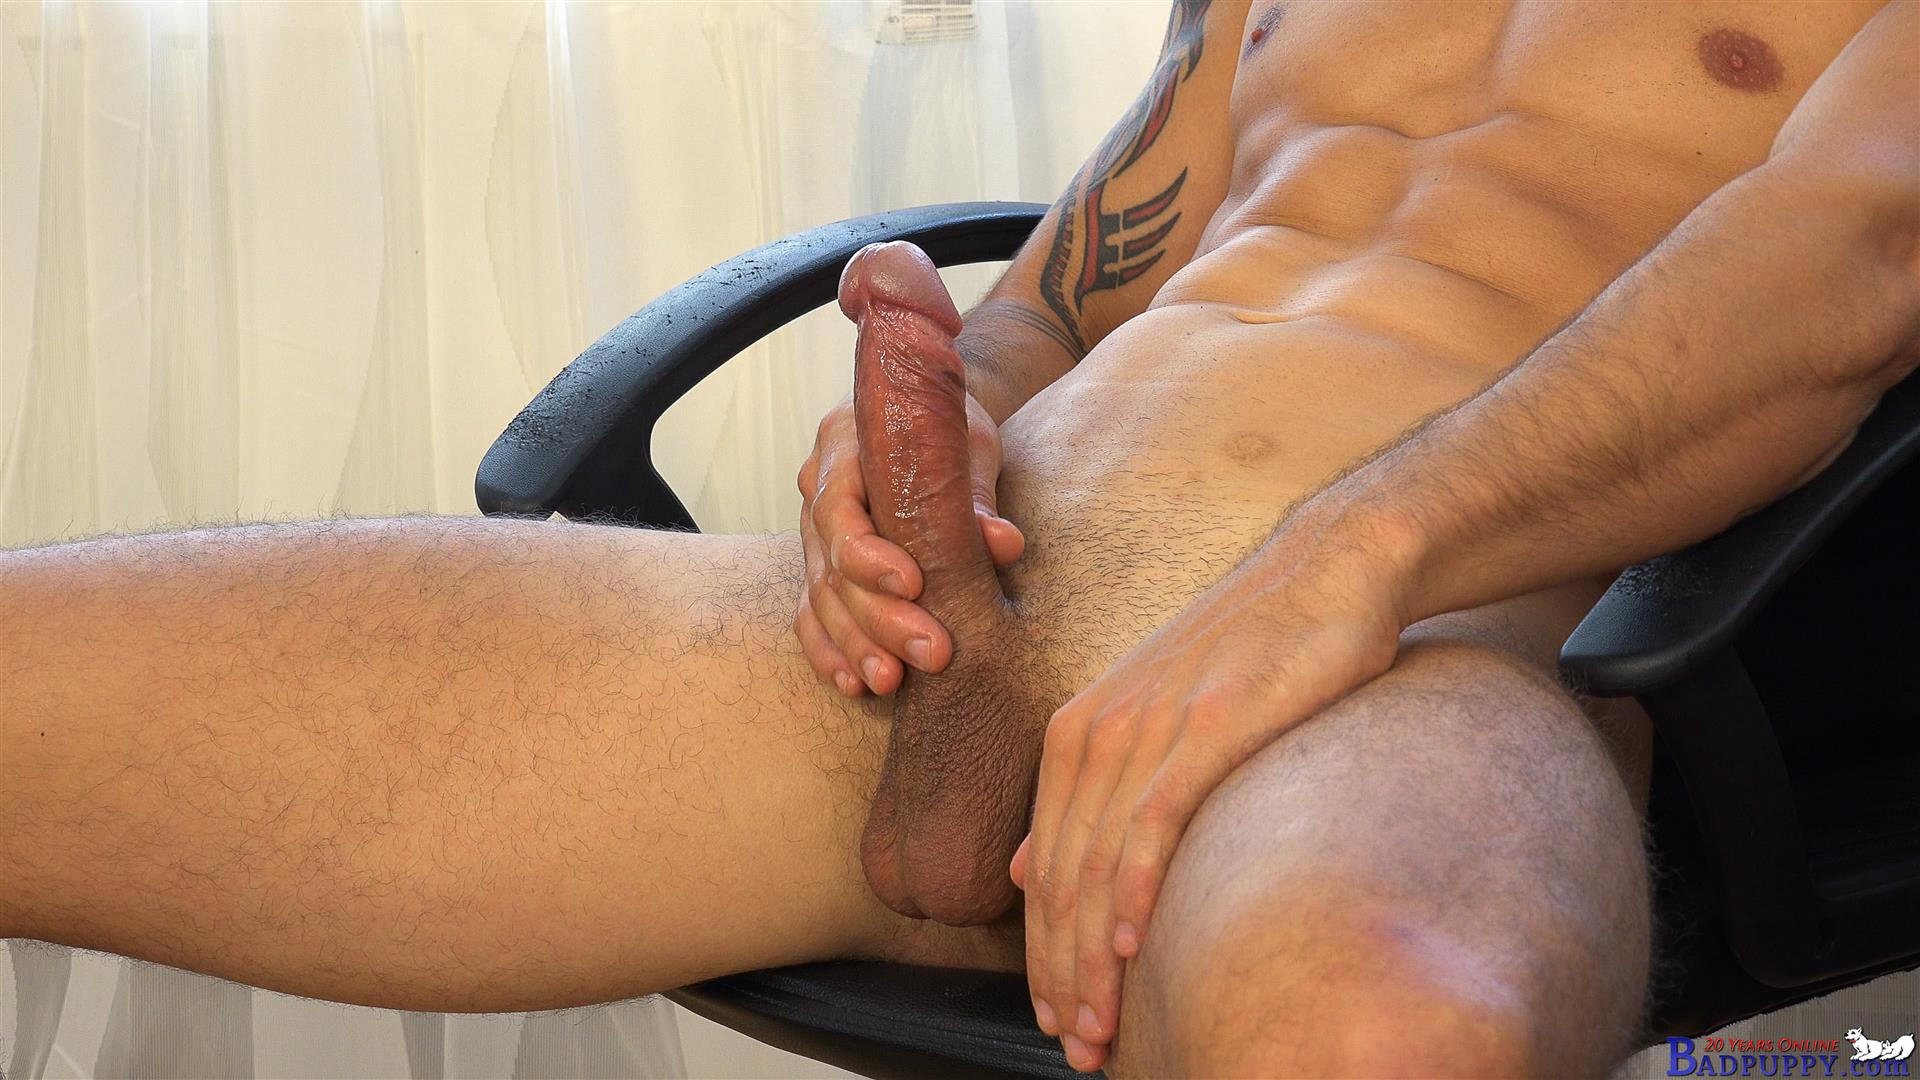 Badpuppy-Milan-Pis-Straight-Guy-With-Big-Uncut-Cock-Masturbating-Amateur-Gay-Porn-22 Straight Italian Banker Masturbating His Big Uncut Cock